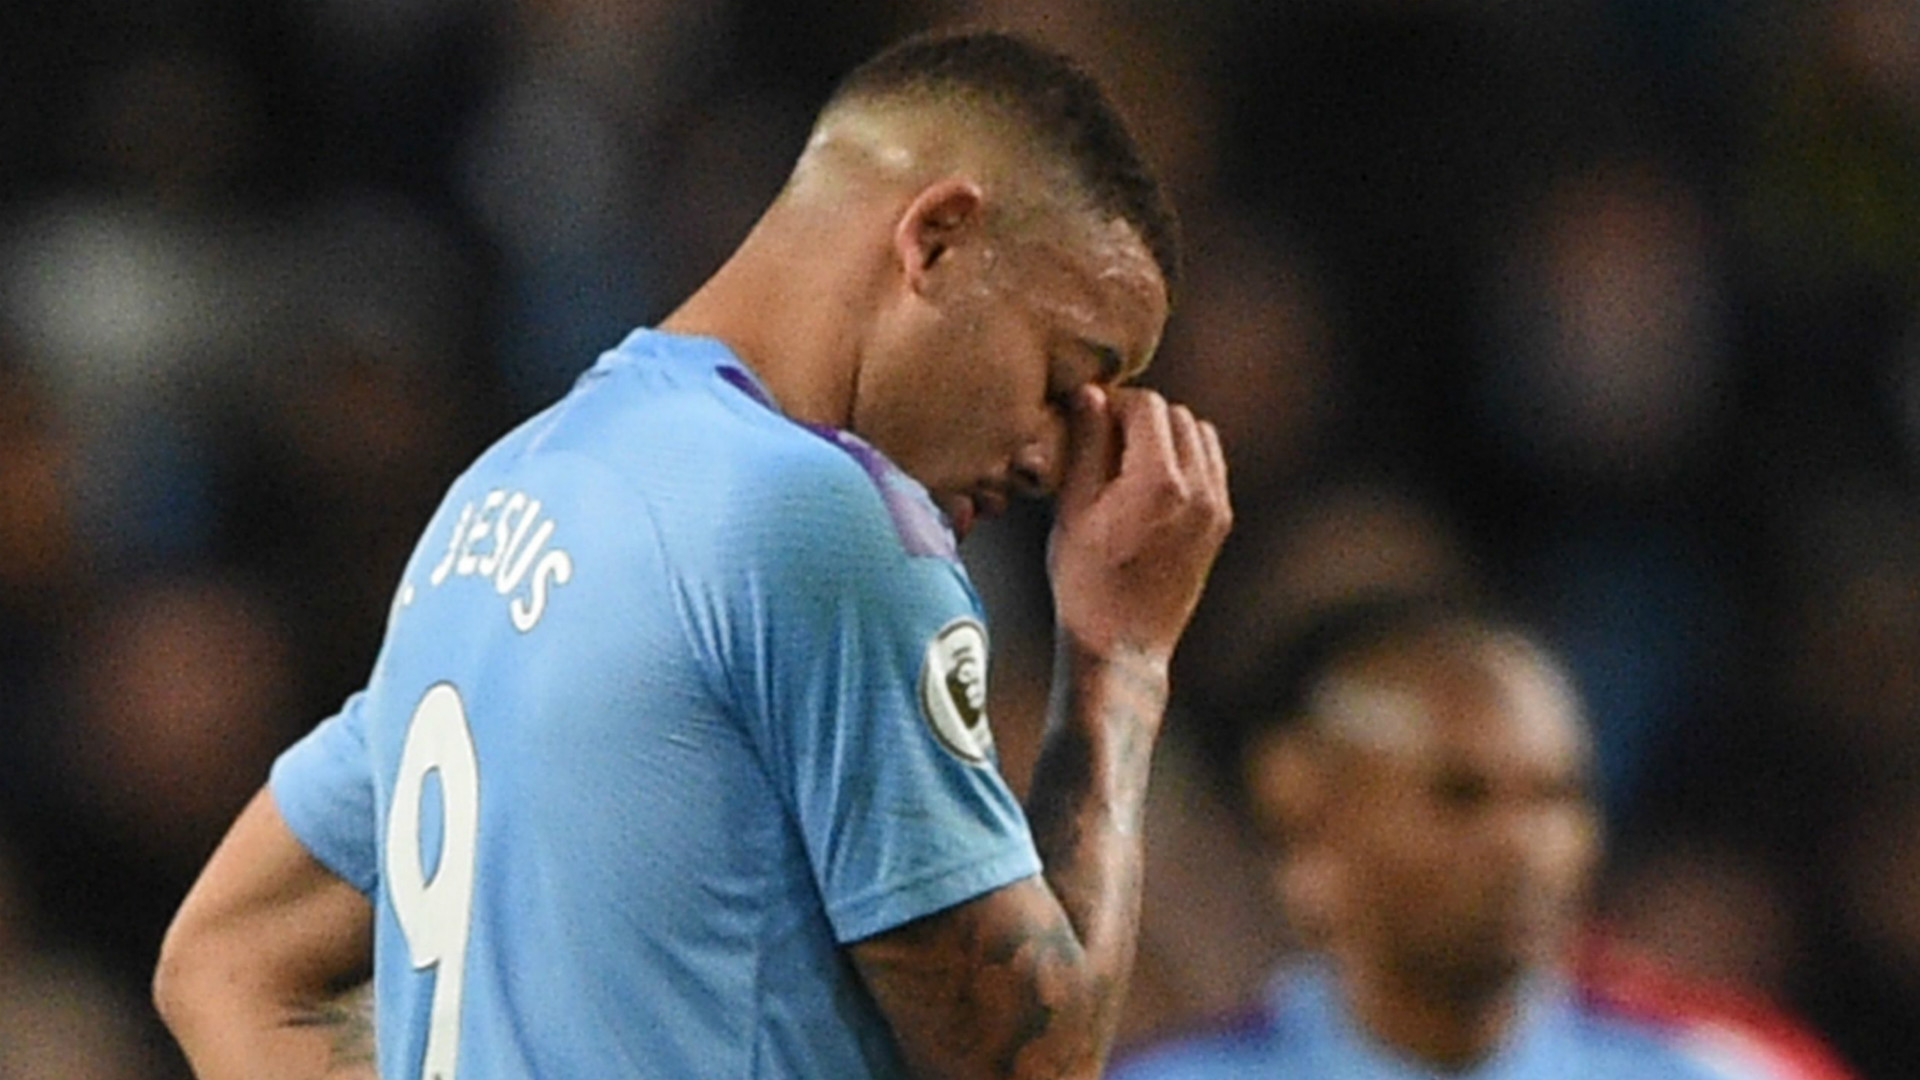 Gabriel Jesus: Manchester City star equals El Hadji Diouf's awful penalty record